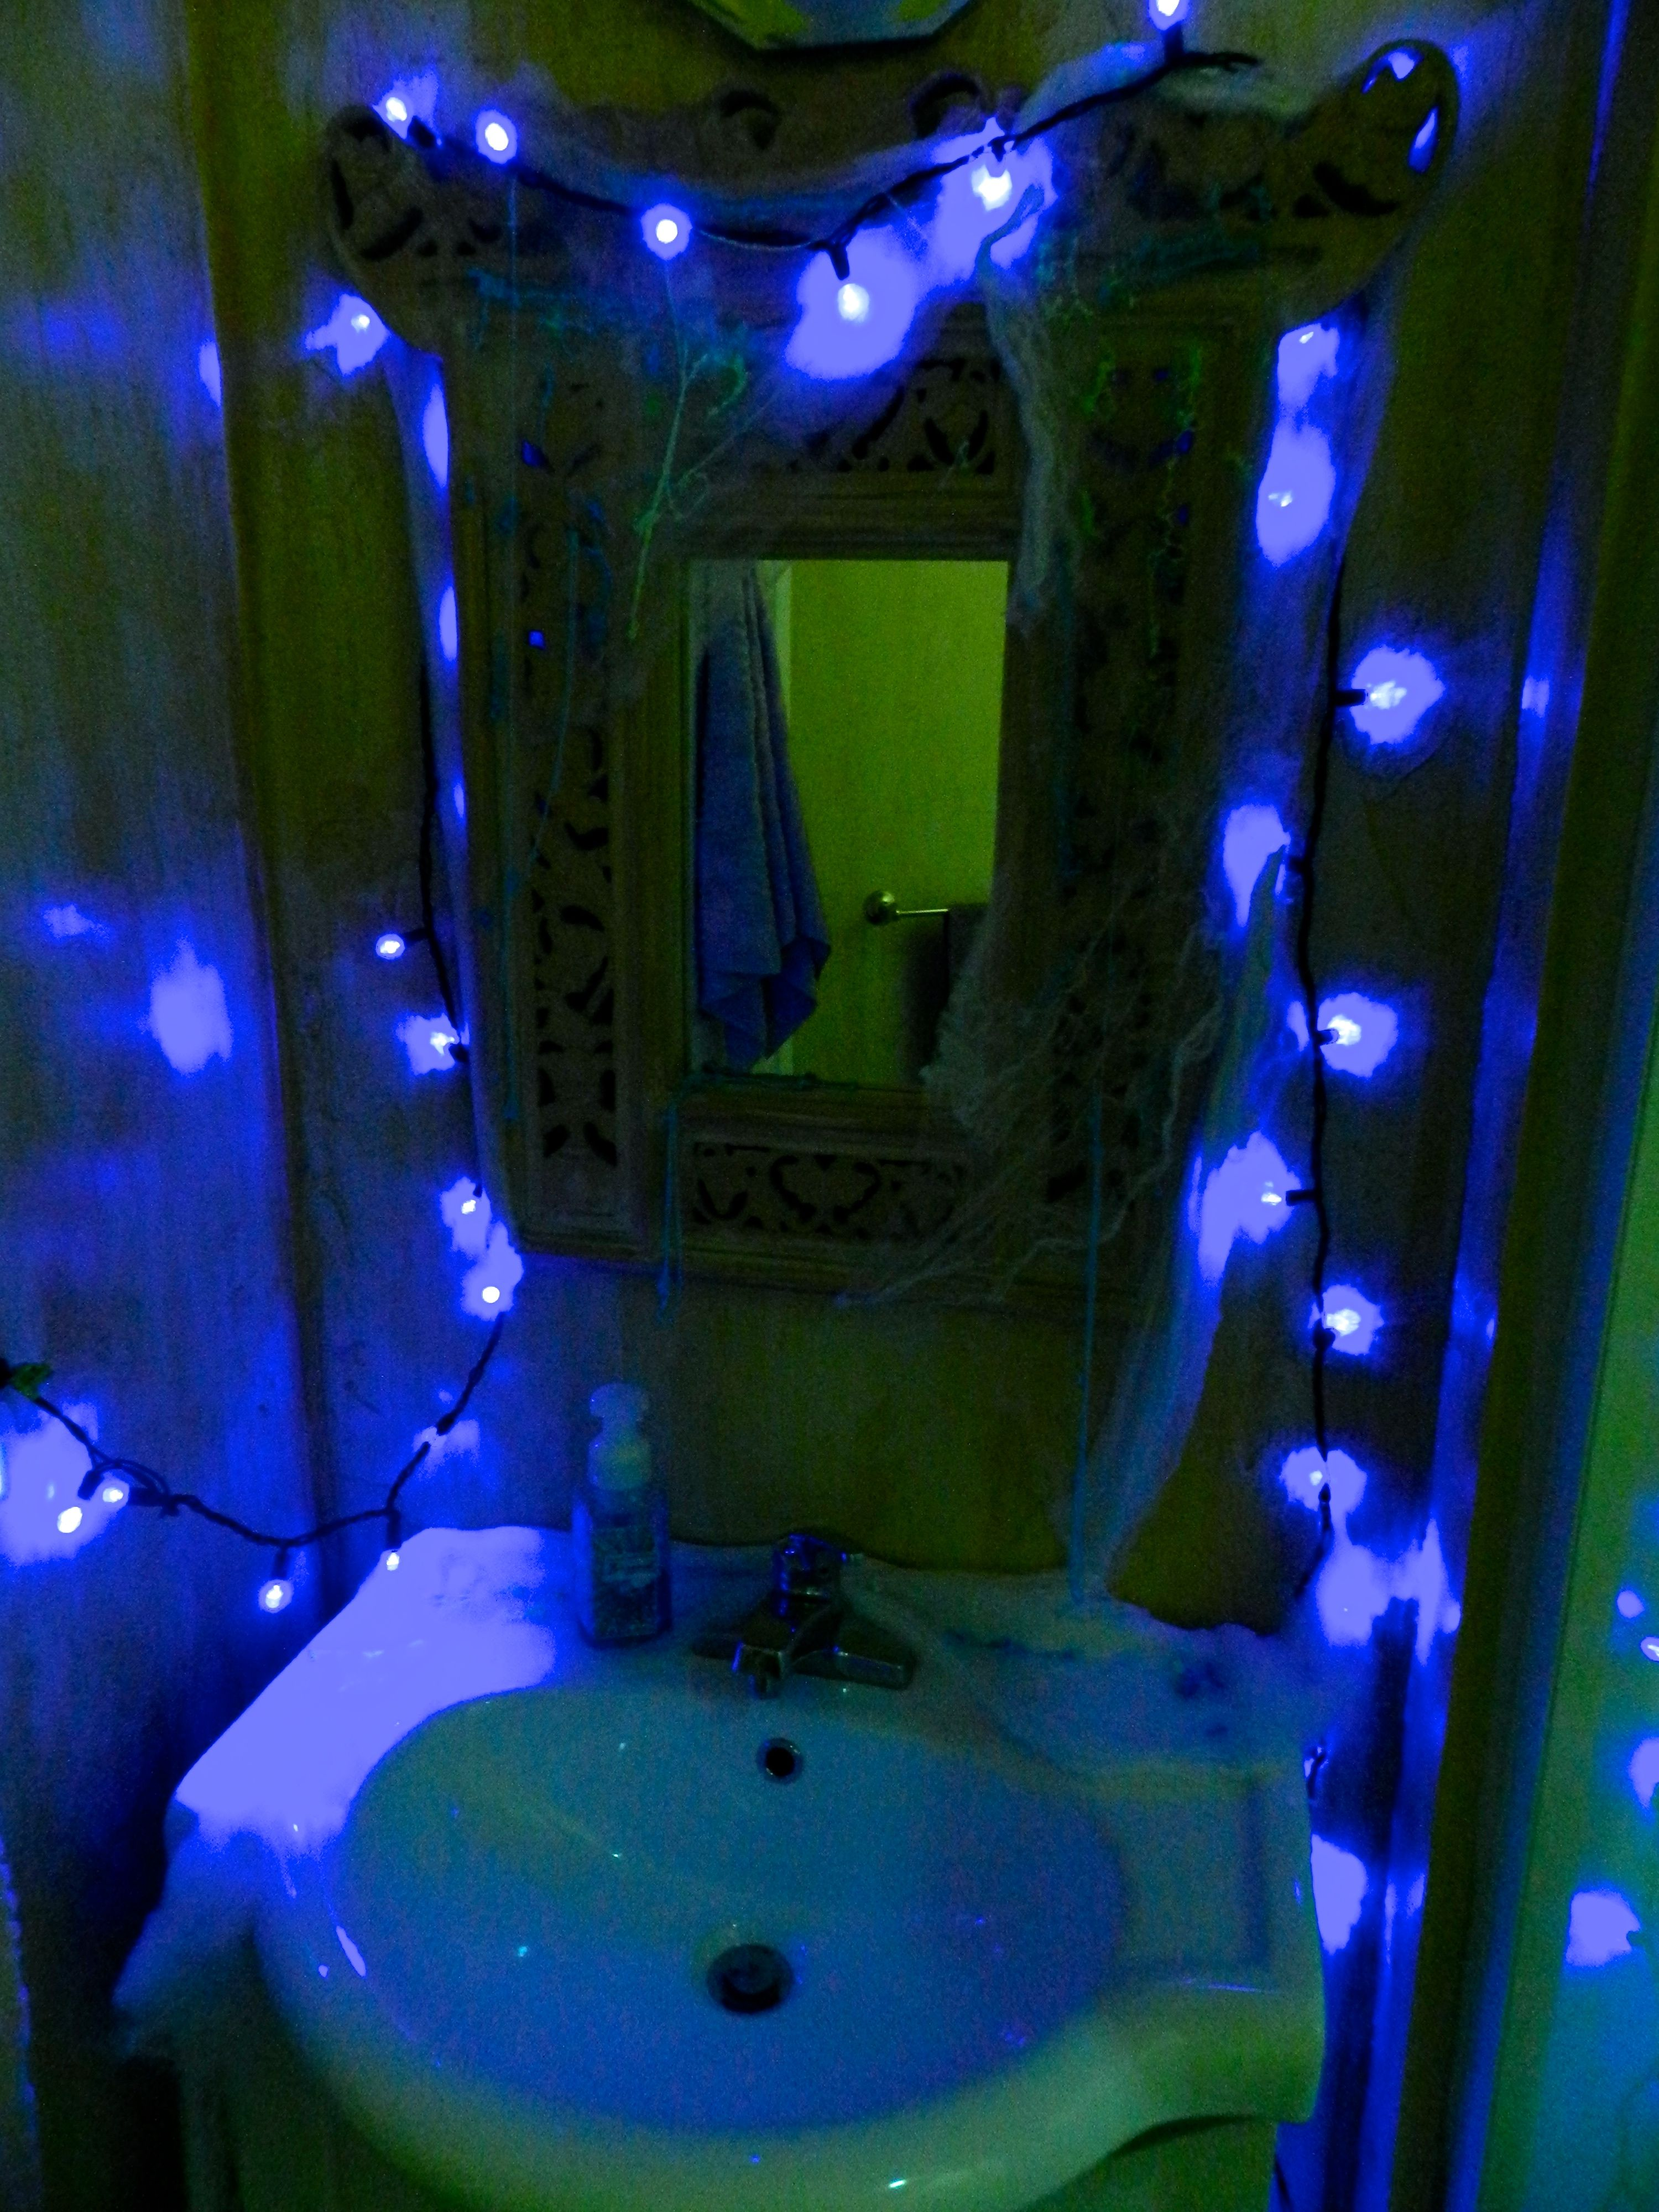 I Threw A Stranger Things Halloween Party And It Was Amazing Stranger Things Halloween Stranger Things Halloween Party Stranger Things Party Stranger things bathroom decor